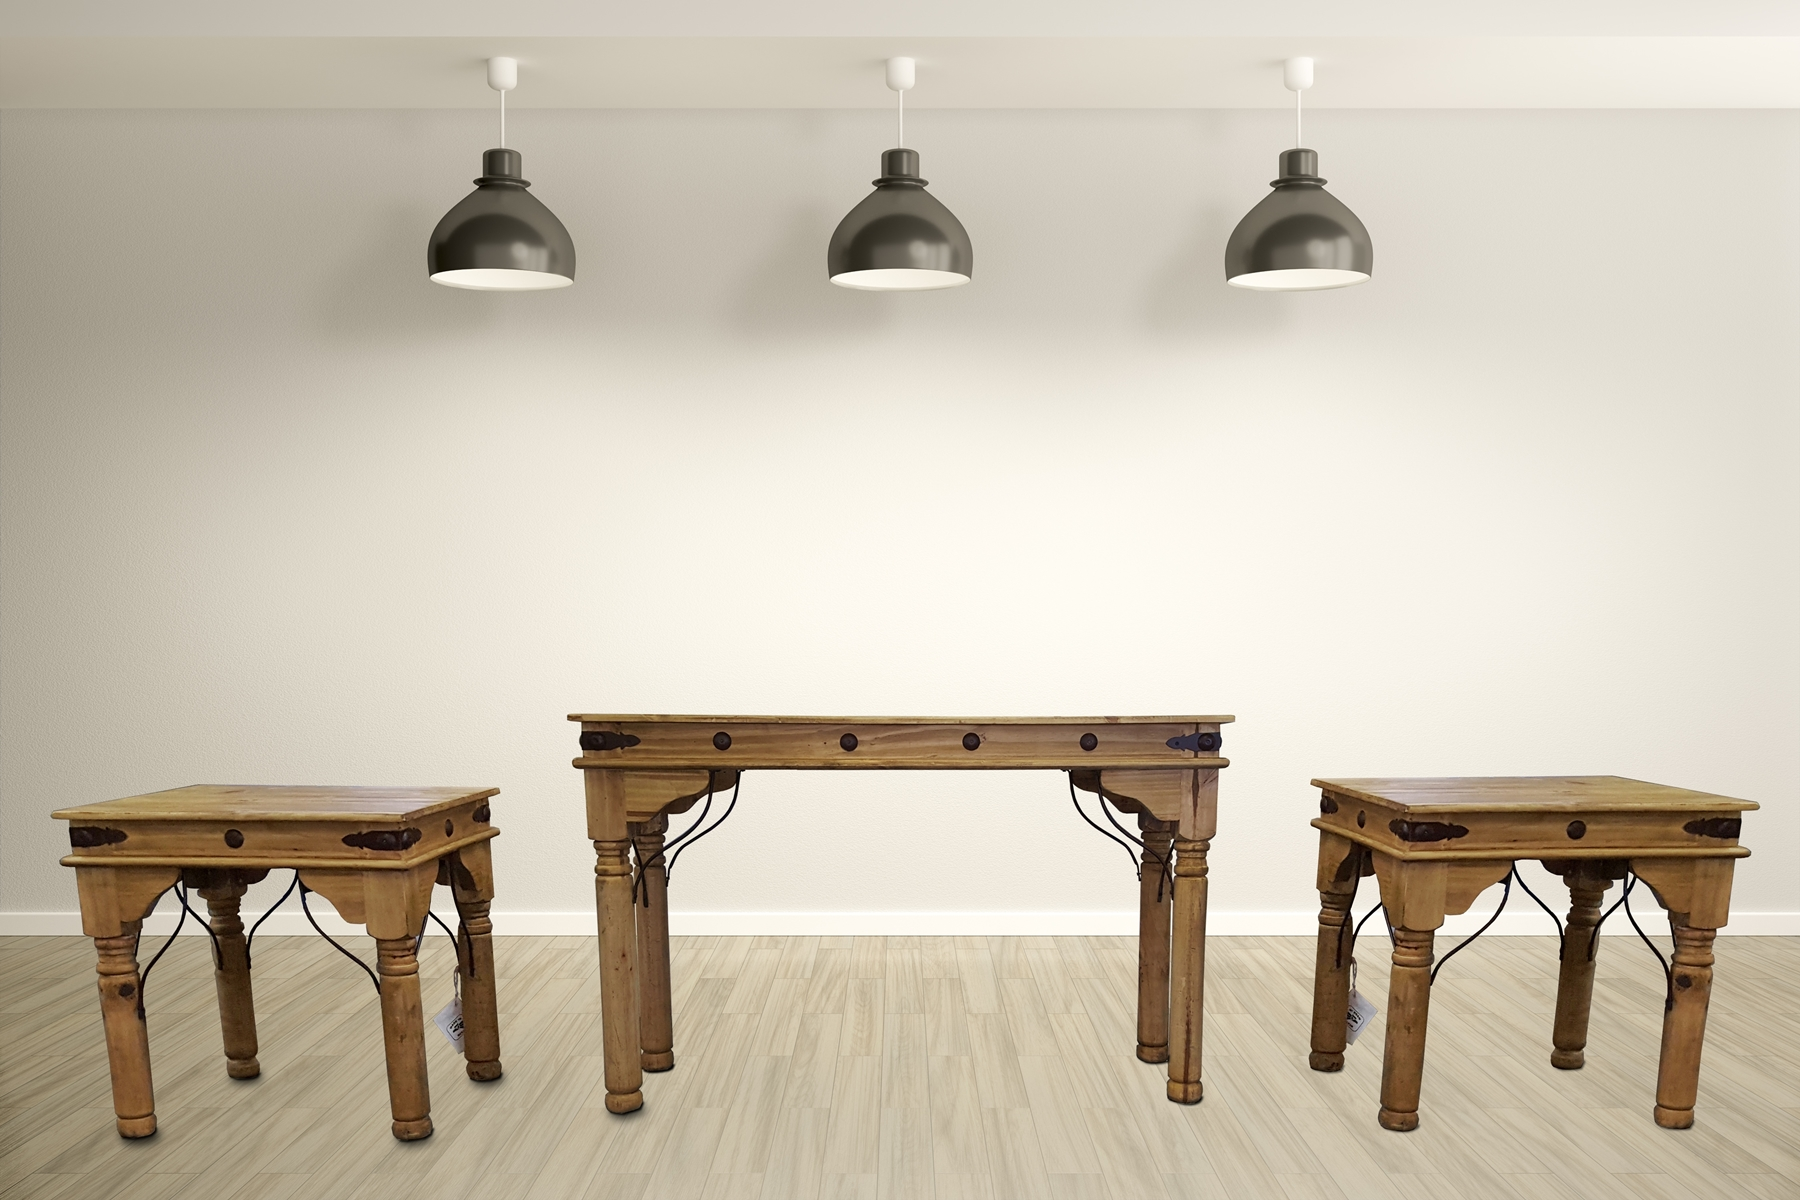 LT-3 Natural Indian Tables